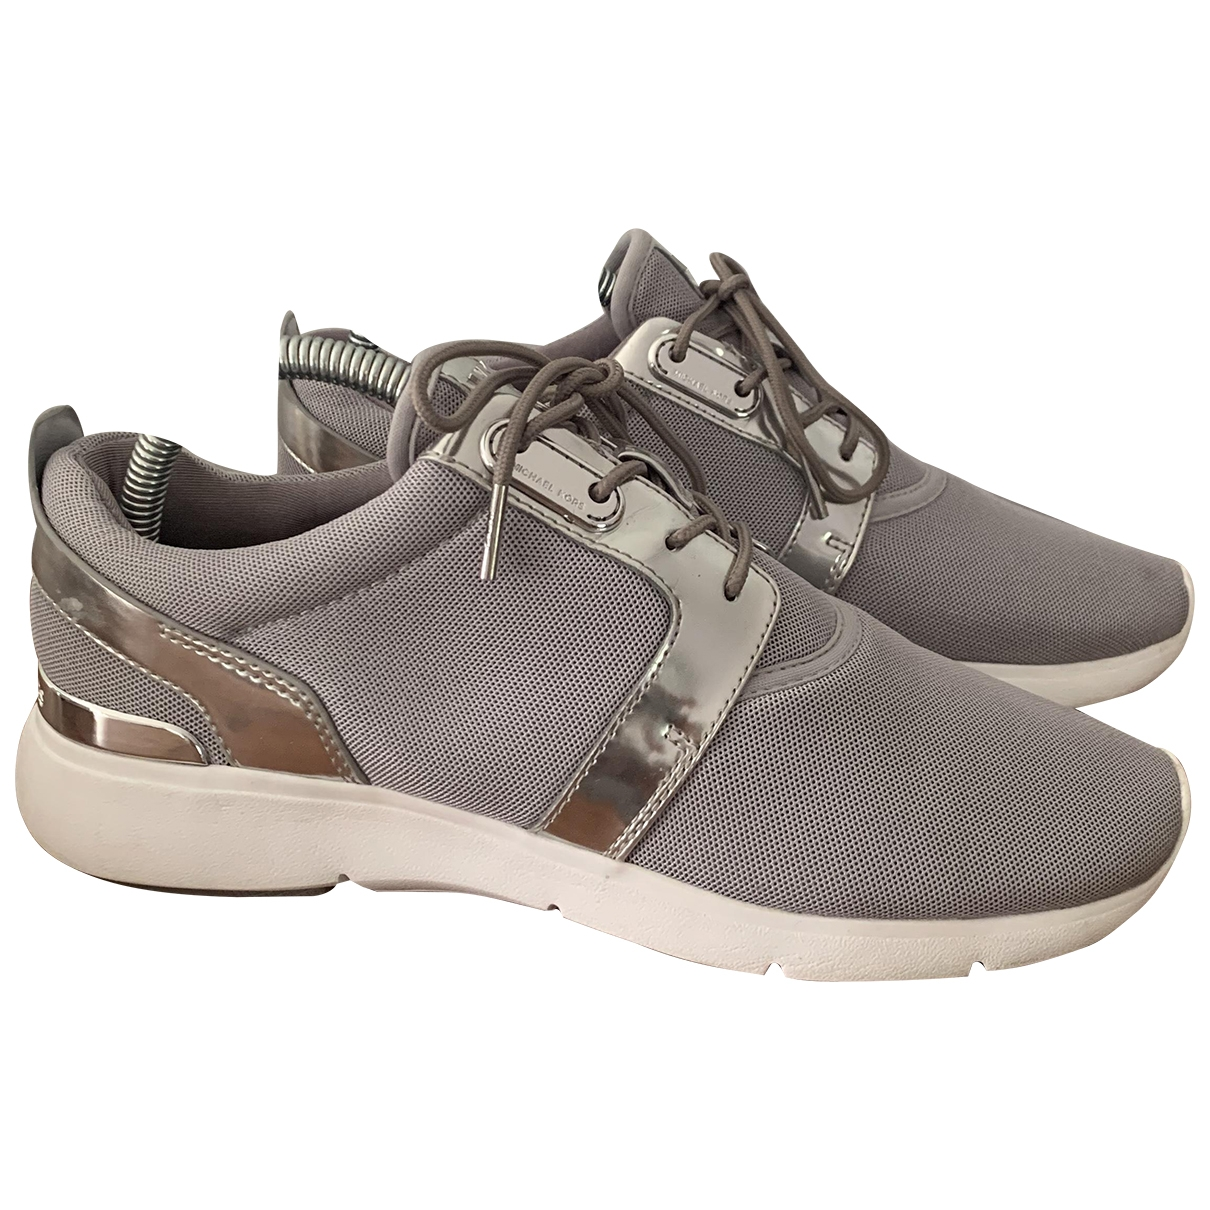 Michael Kors \N Grey Trainers for Women 38.5 EU